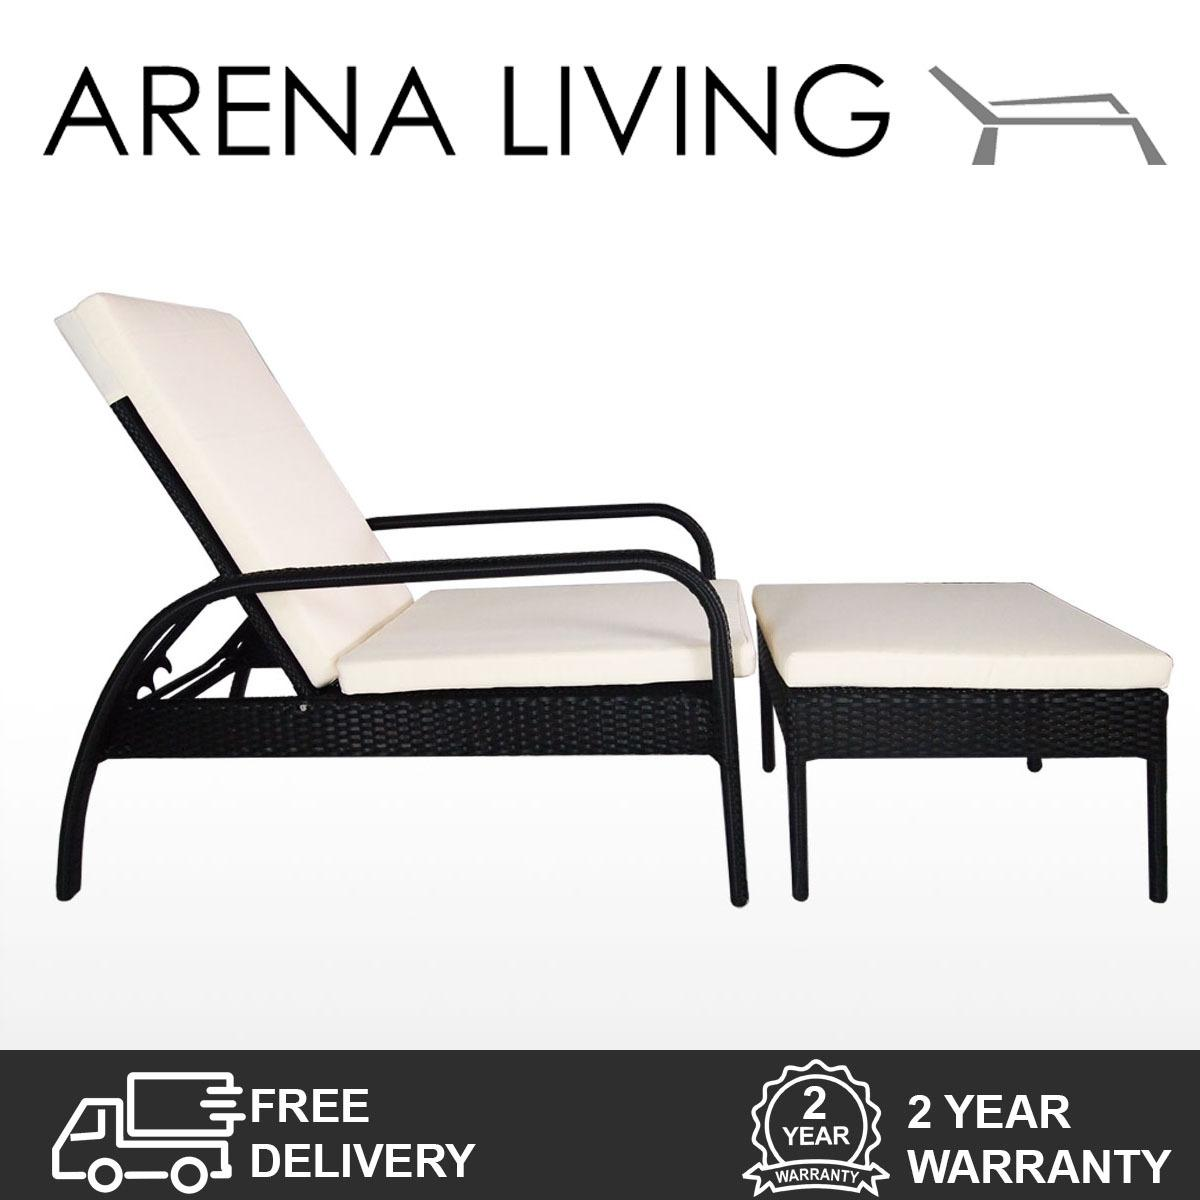 Retail Price Arena Living Ferraria Sunbed White Cushion Fully Assembled